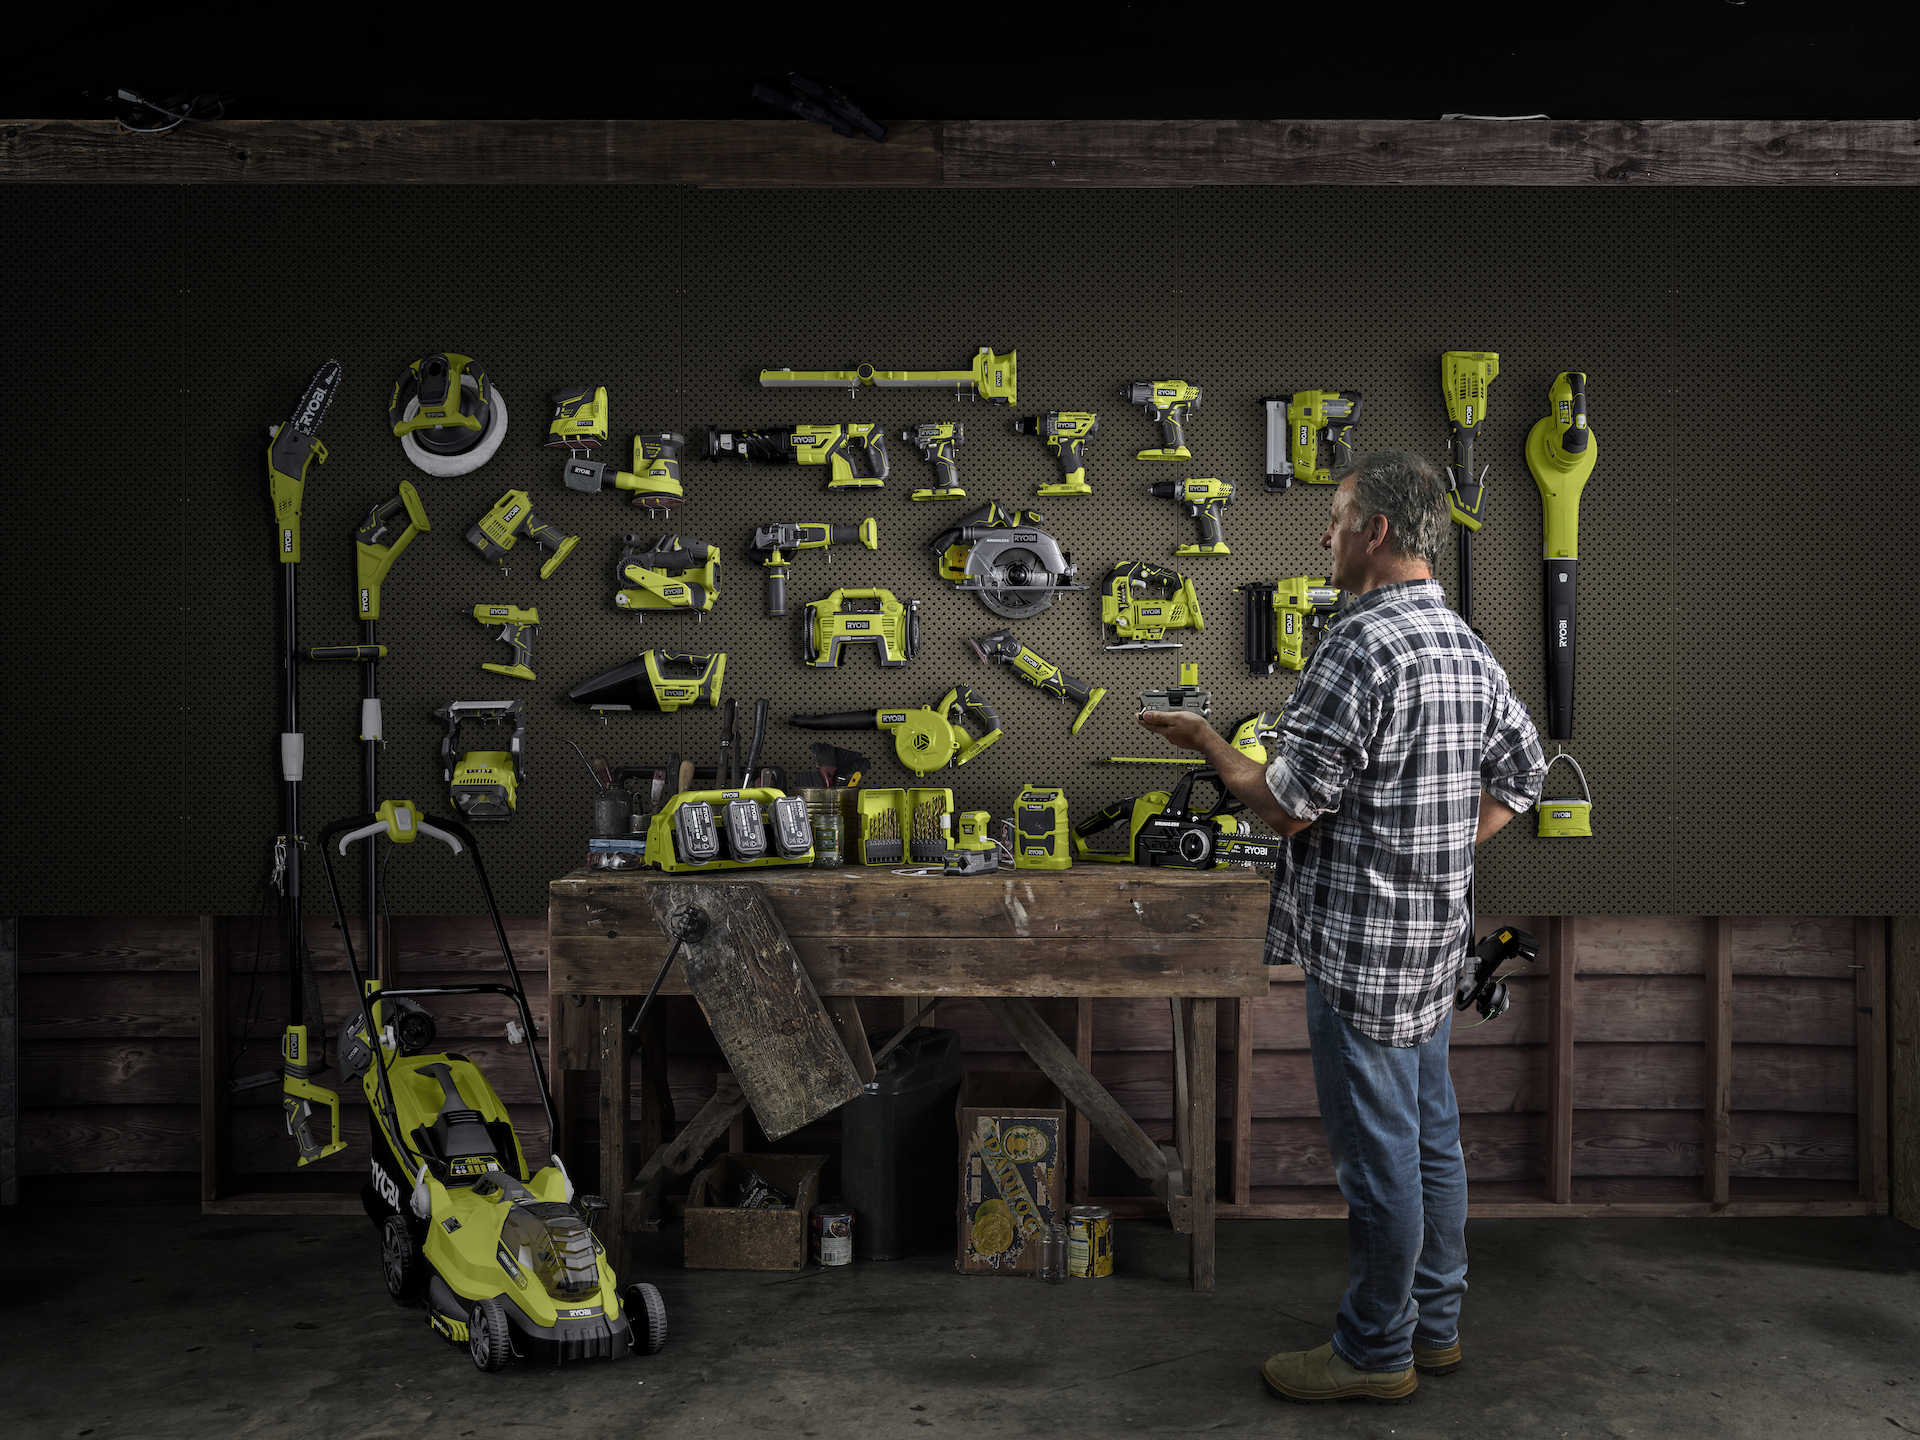 Ryobi one plus you layered